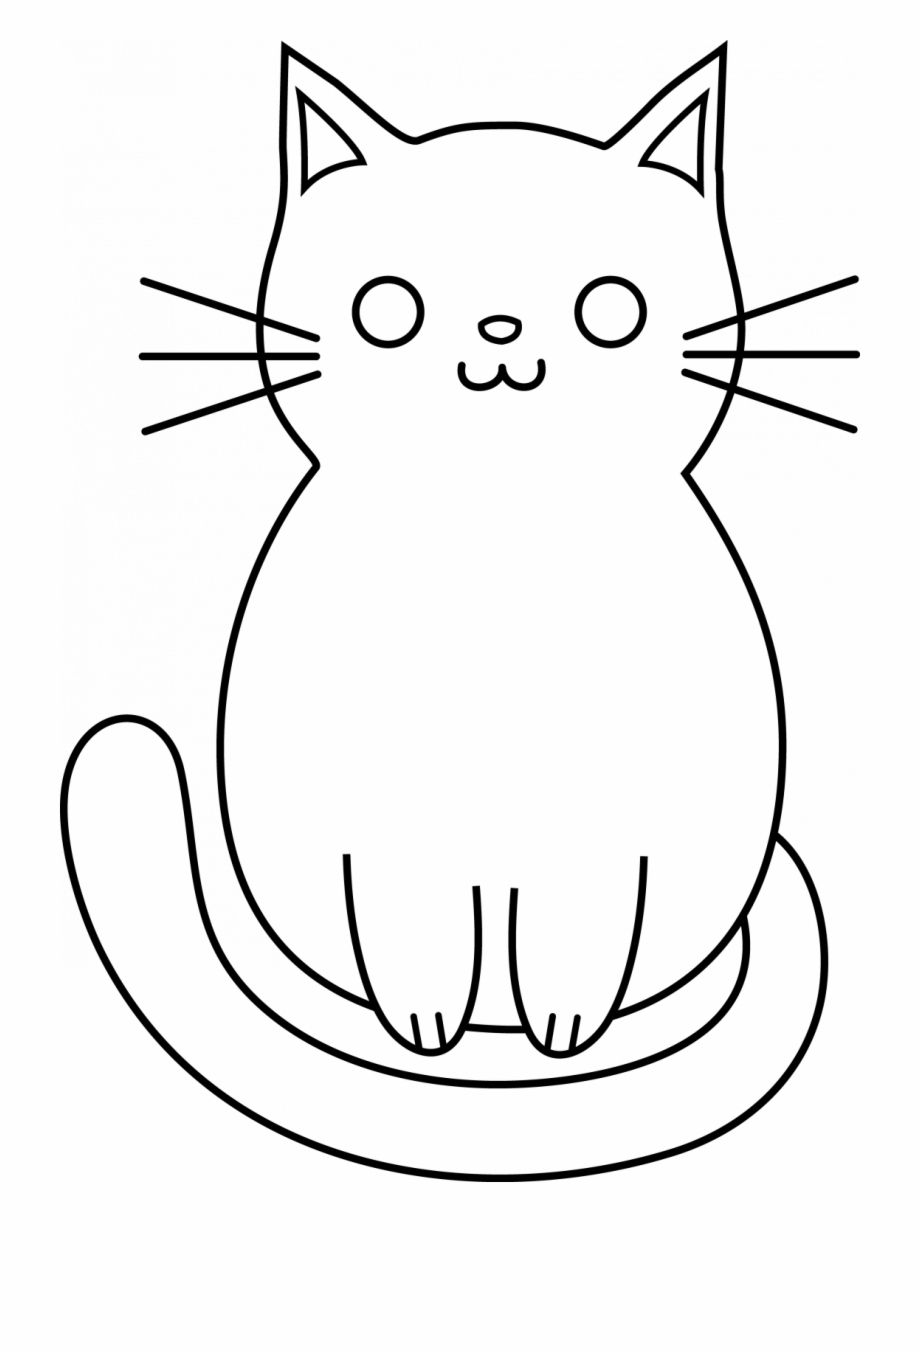 Cute Drawings Cat Easy In 2020 With Images Cute Drawings